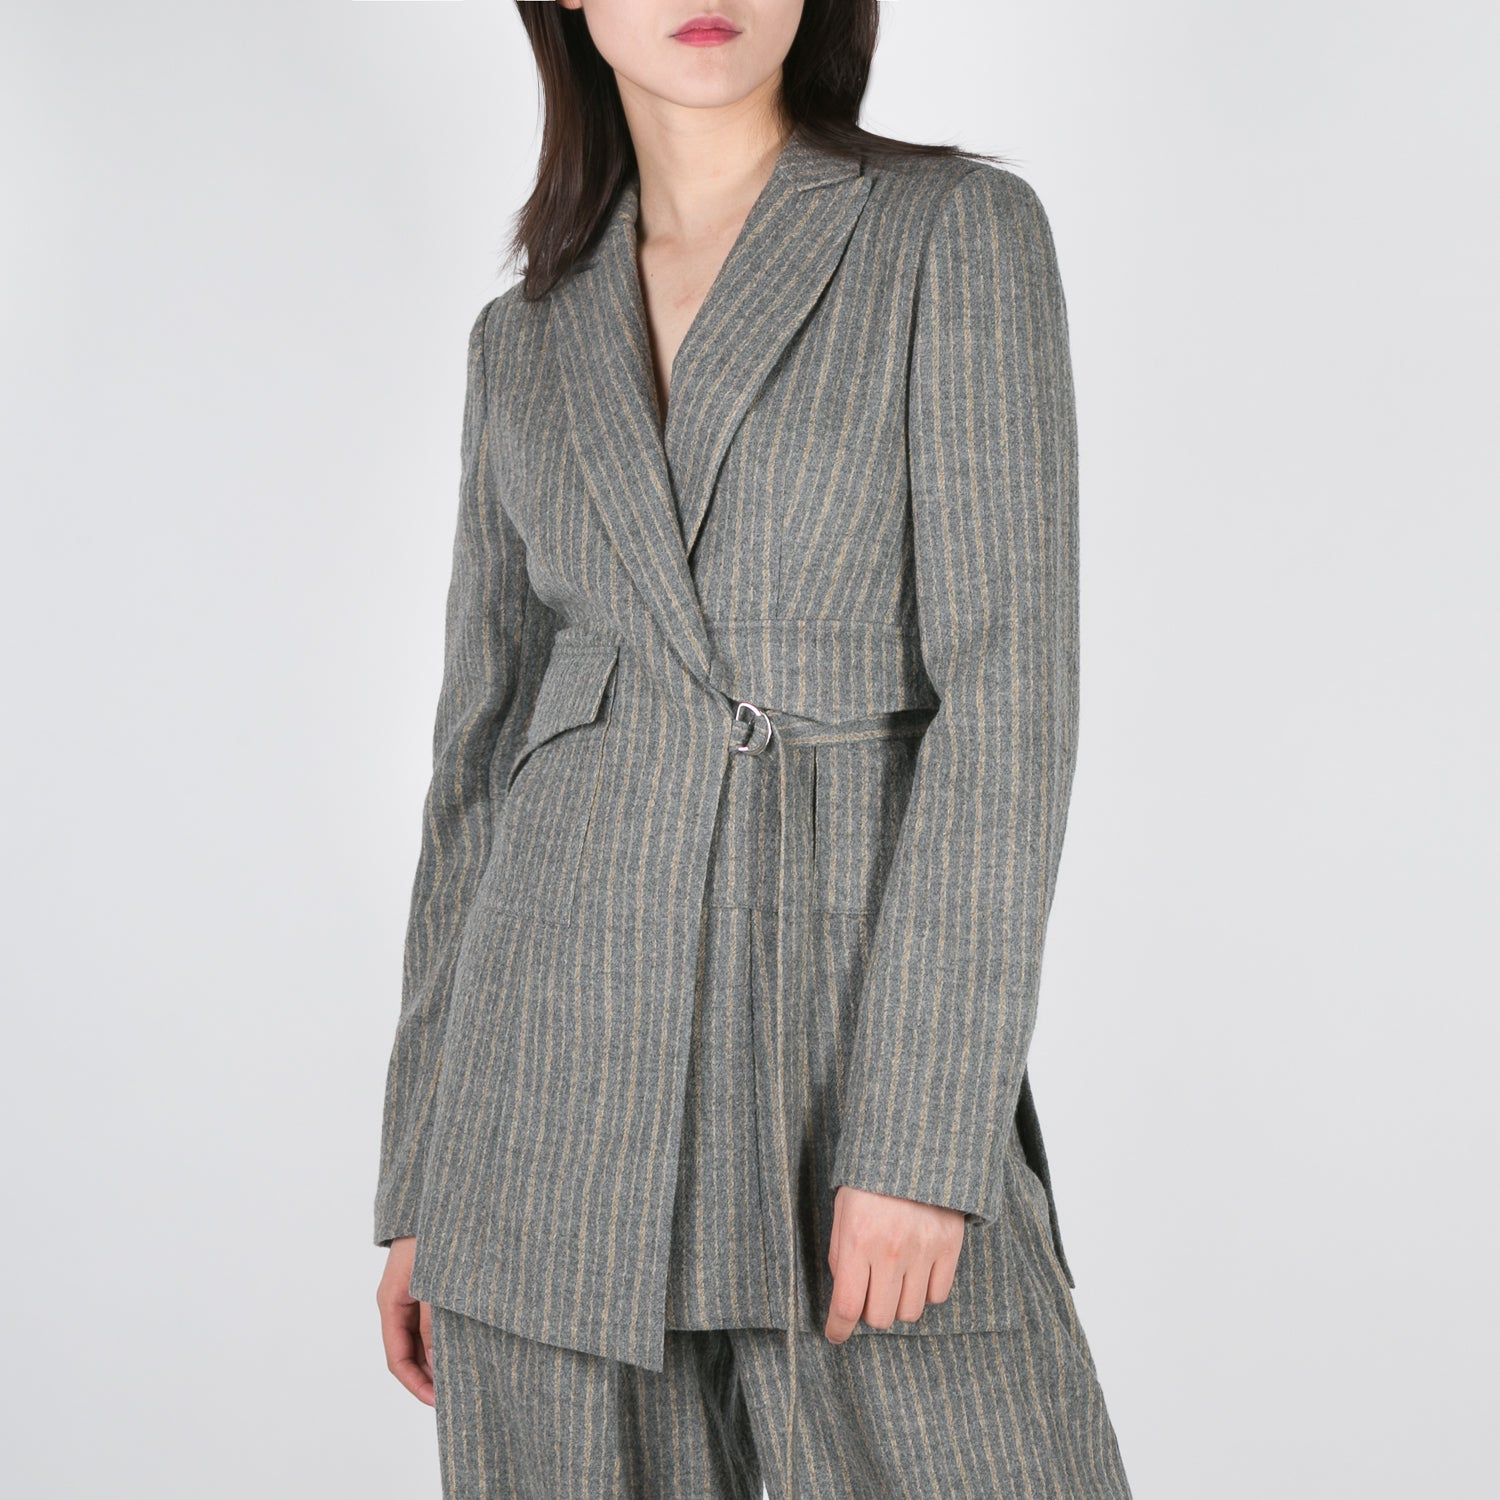 stripped wool blazer with waist strap by Dawei at Secret Location